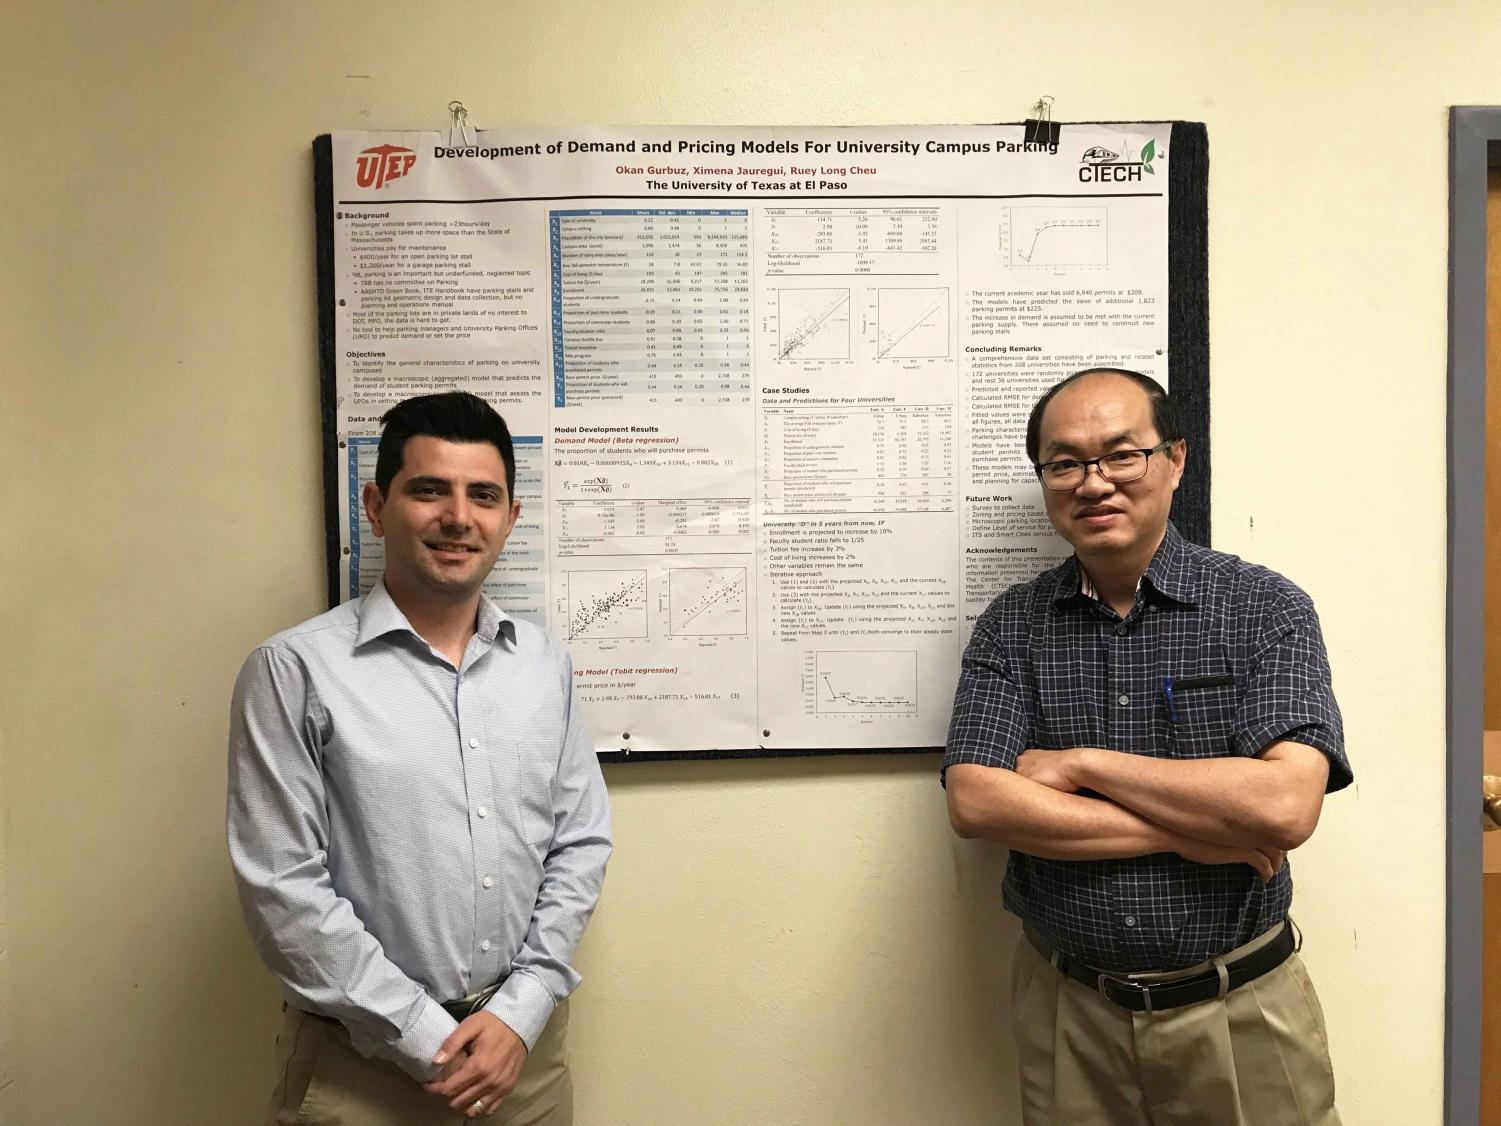 Ph.D., civil engineering student, Okan Gurbuz and civil engineering professor Kelvin Cheu, Ph.D., are working in a research project to develop tools to assist parking offices for universities nationwide.